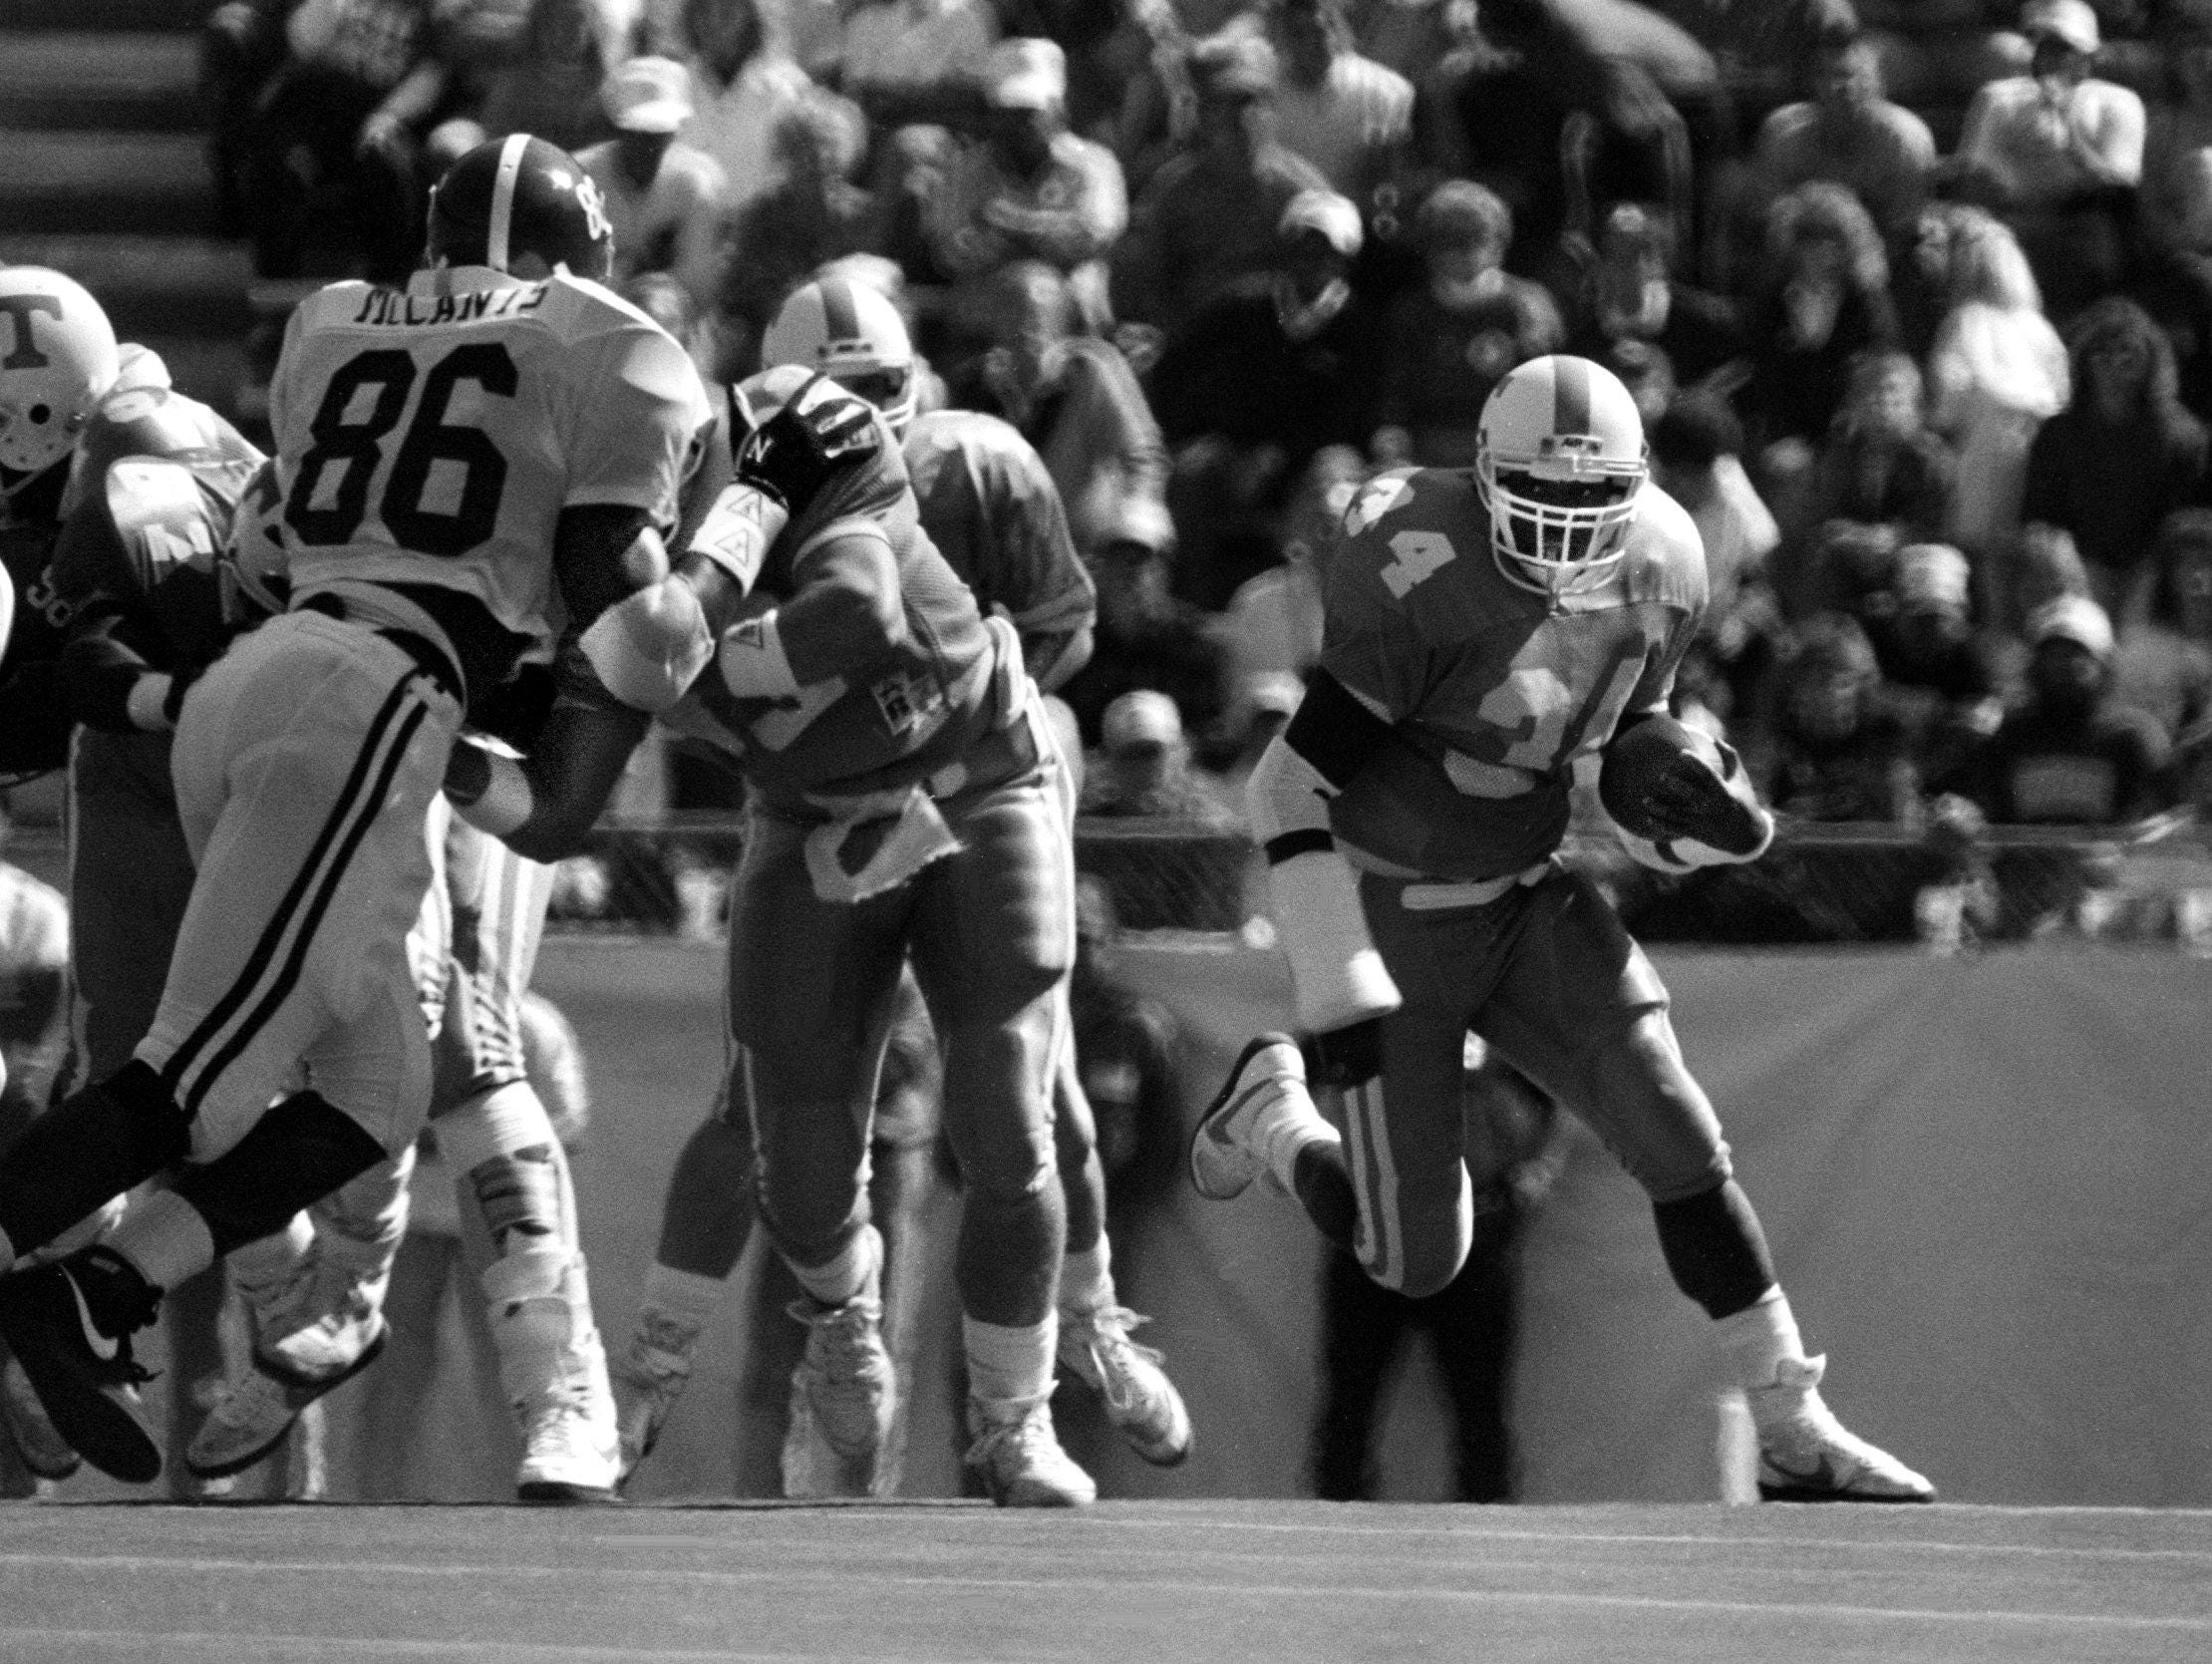 Tennesee running back Reggie Cobb (34) gets some daylight going outside against Alabama. The Vols lost their sixth straight of the season, falling 28-20 to Alabama in Knoxville. Staff photo by Ricky Rogers 10/15/1988